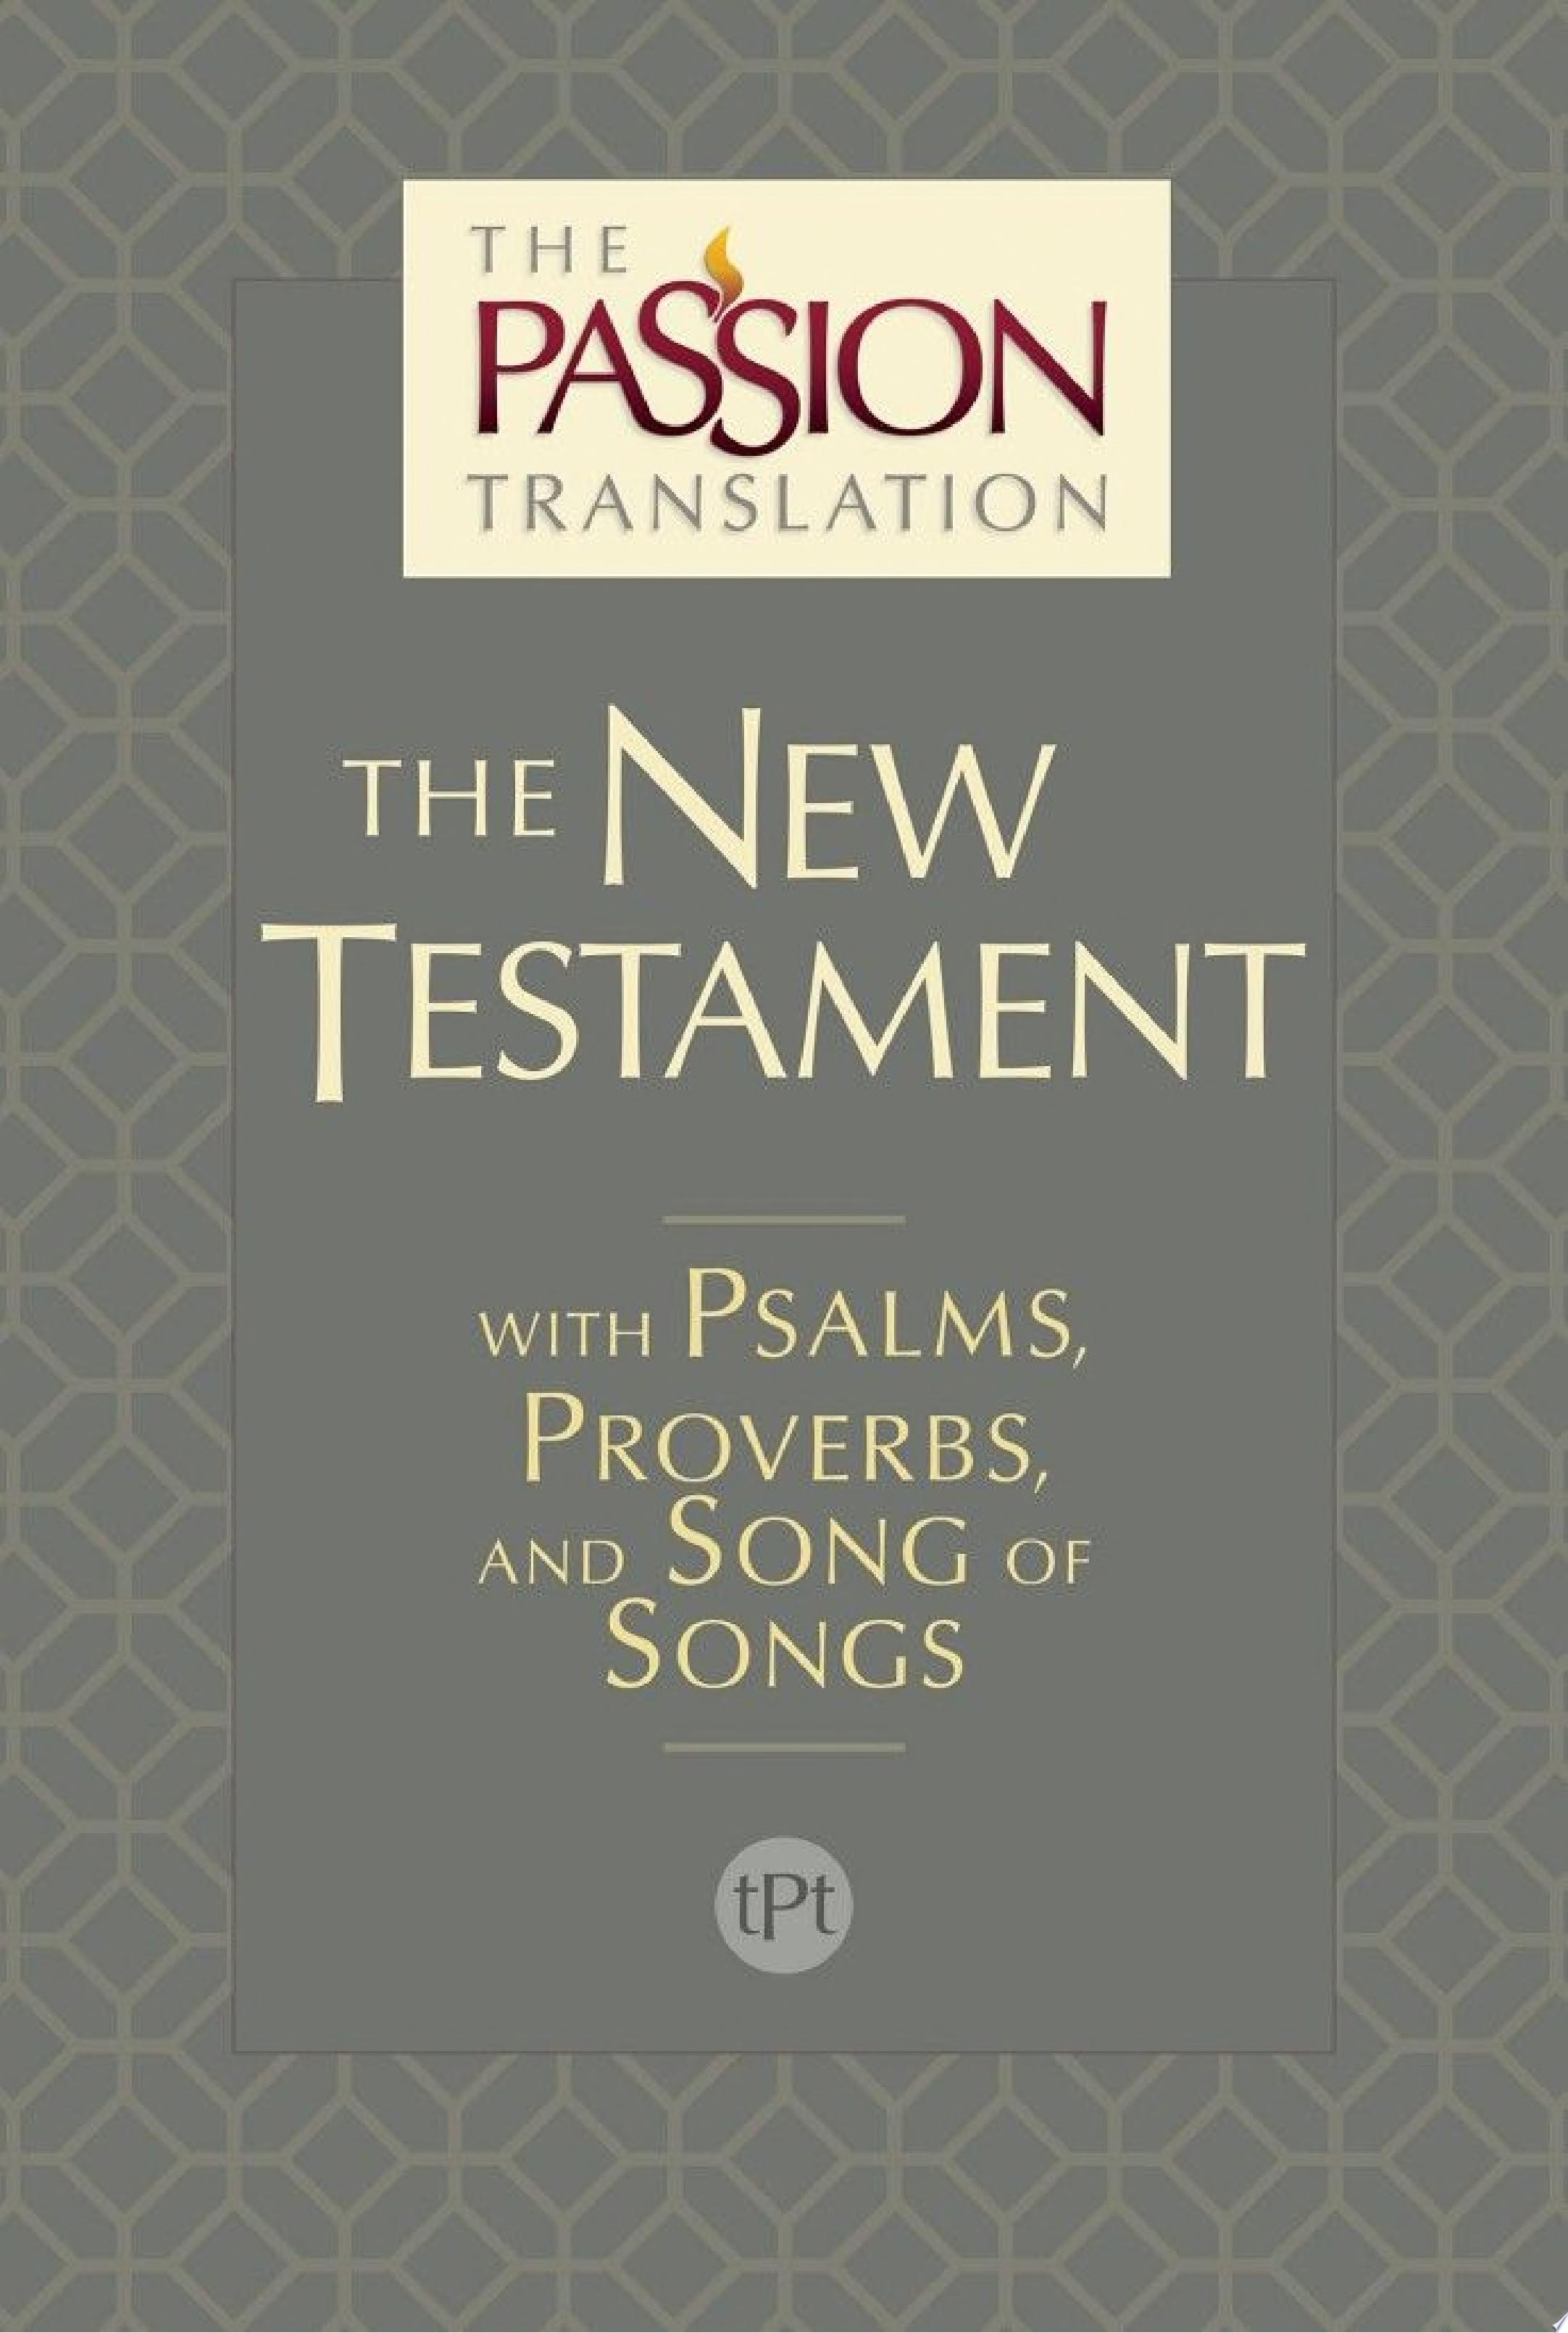 The Passion Translation New Testament  2nd Edition